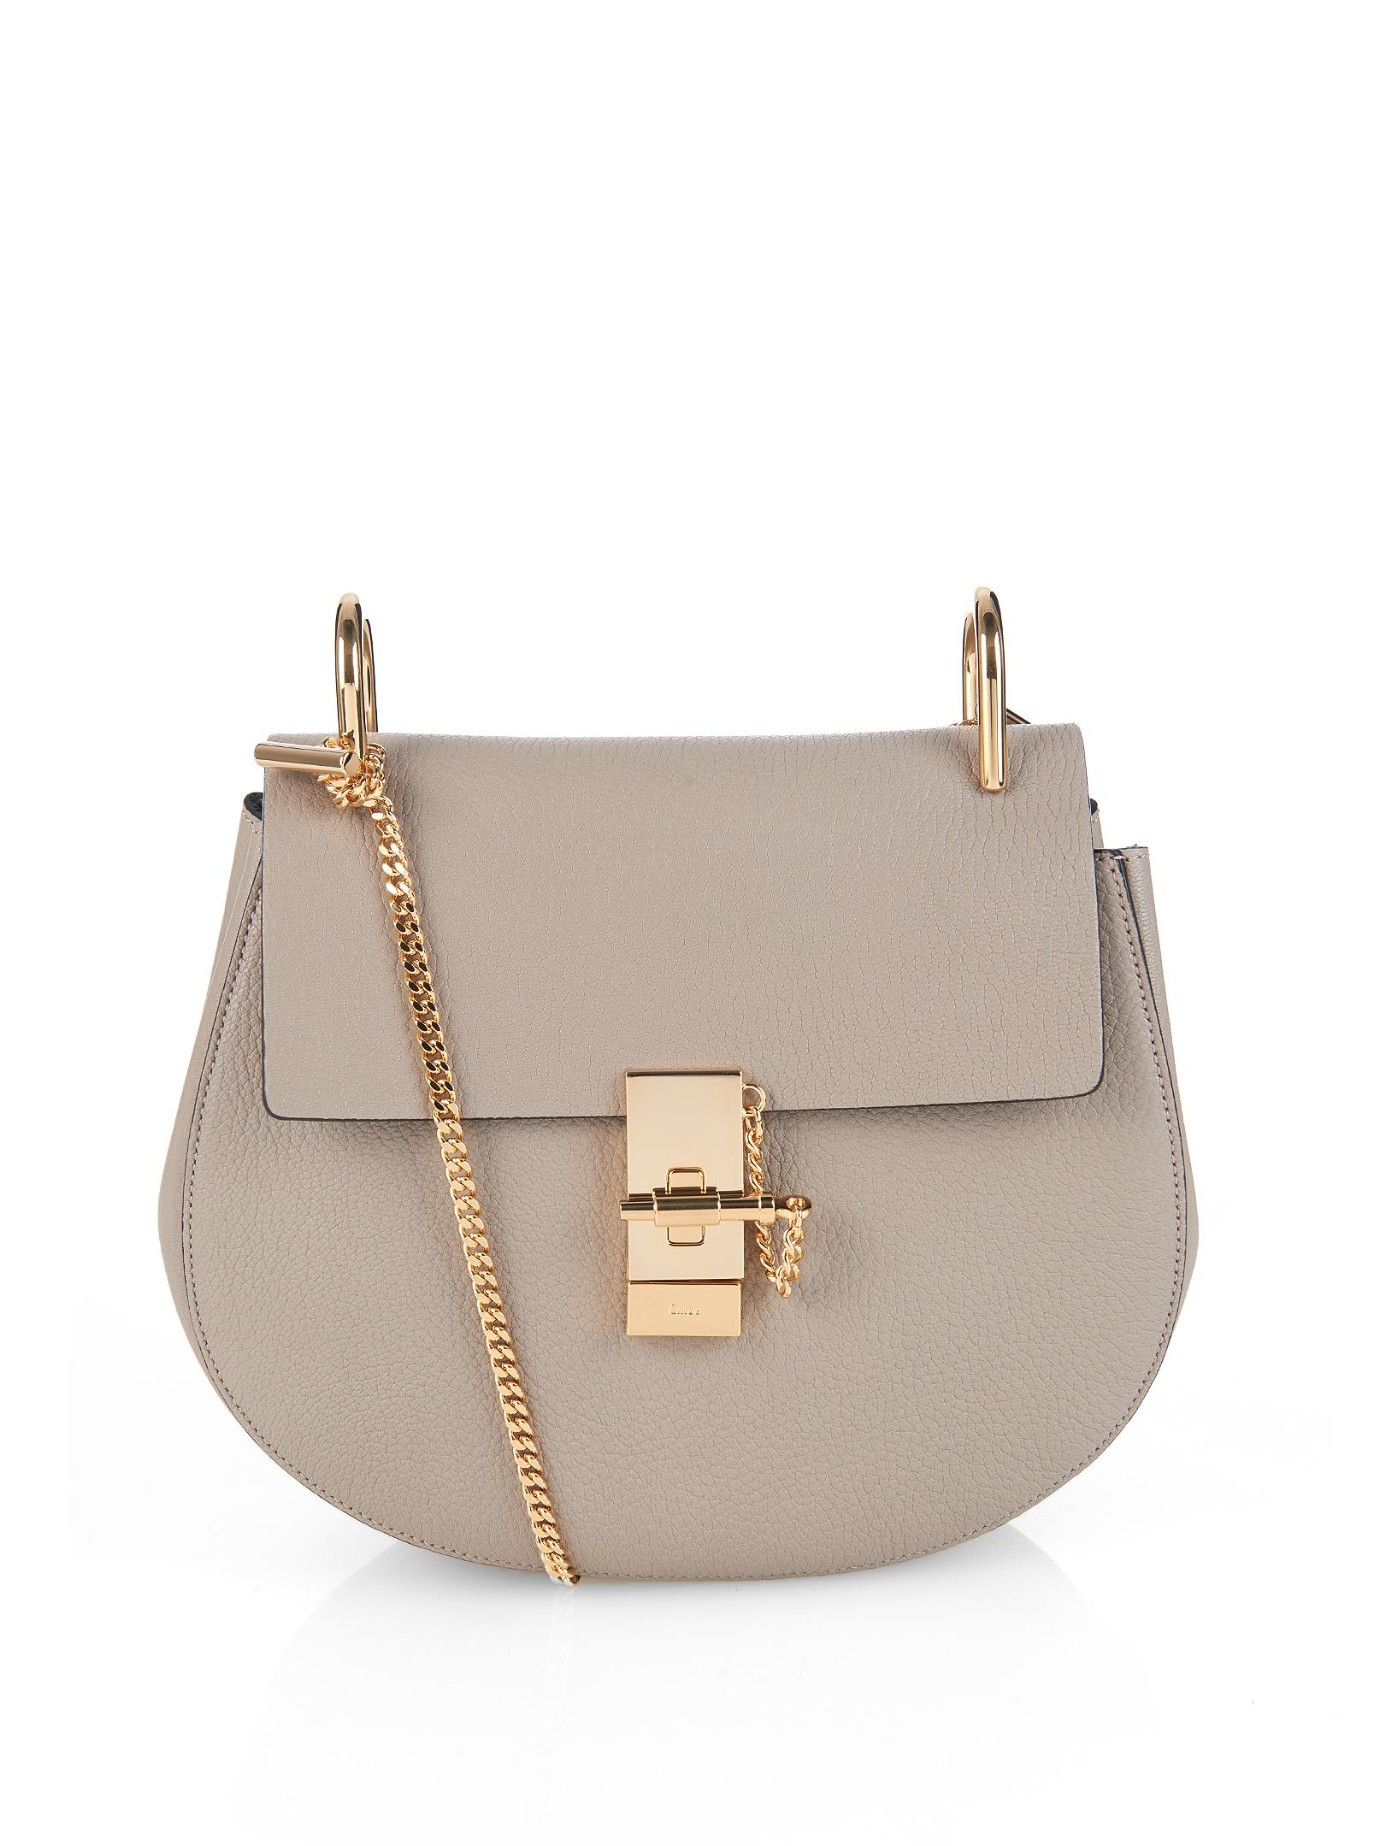 chlo drew small leather shoulder bag in gray lyst. Black Bedroom Furniture Sets. Home Design Ideas